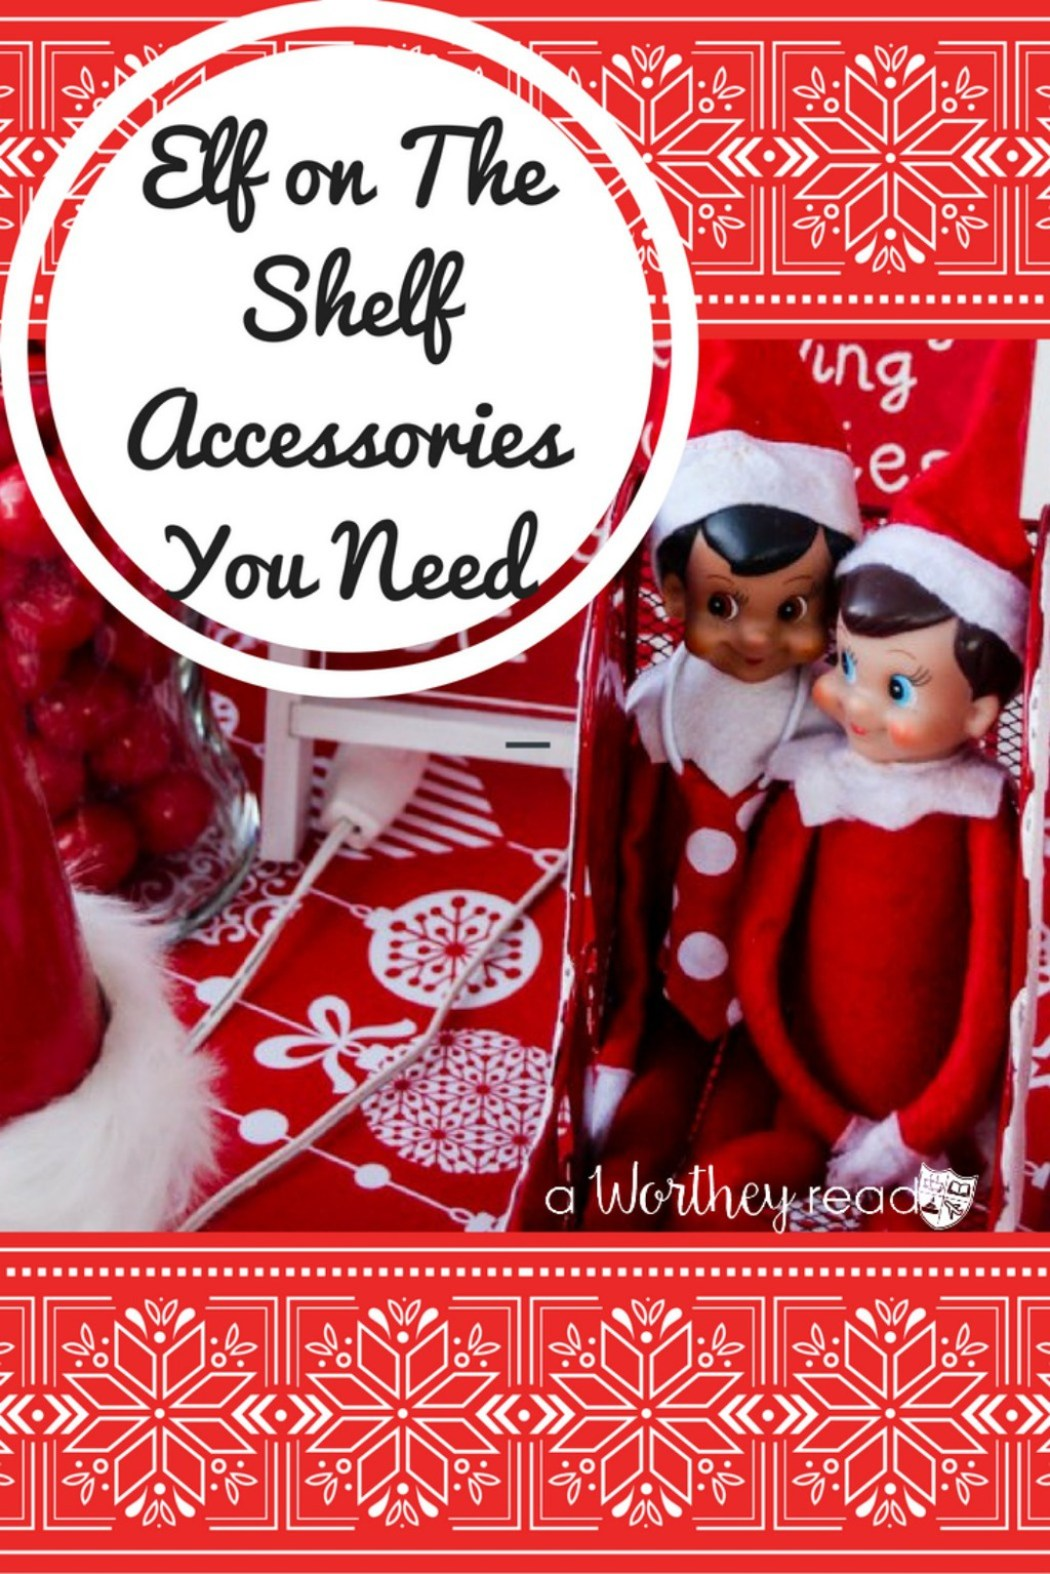 Elf On The Shelf Accessories You Need This Worthey Life